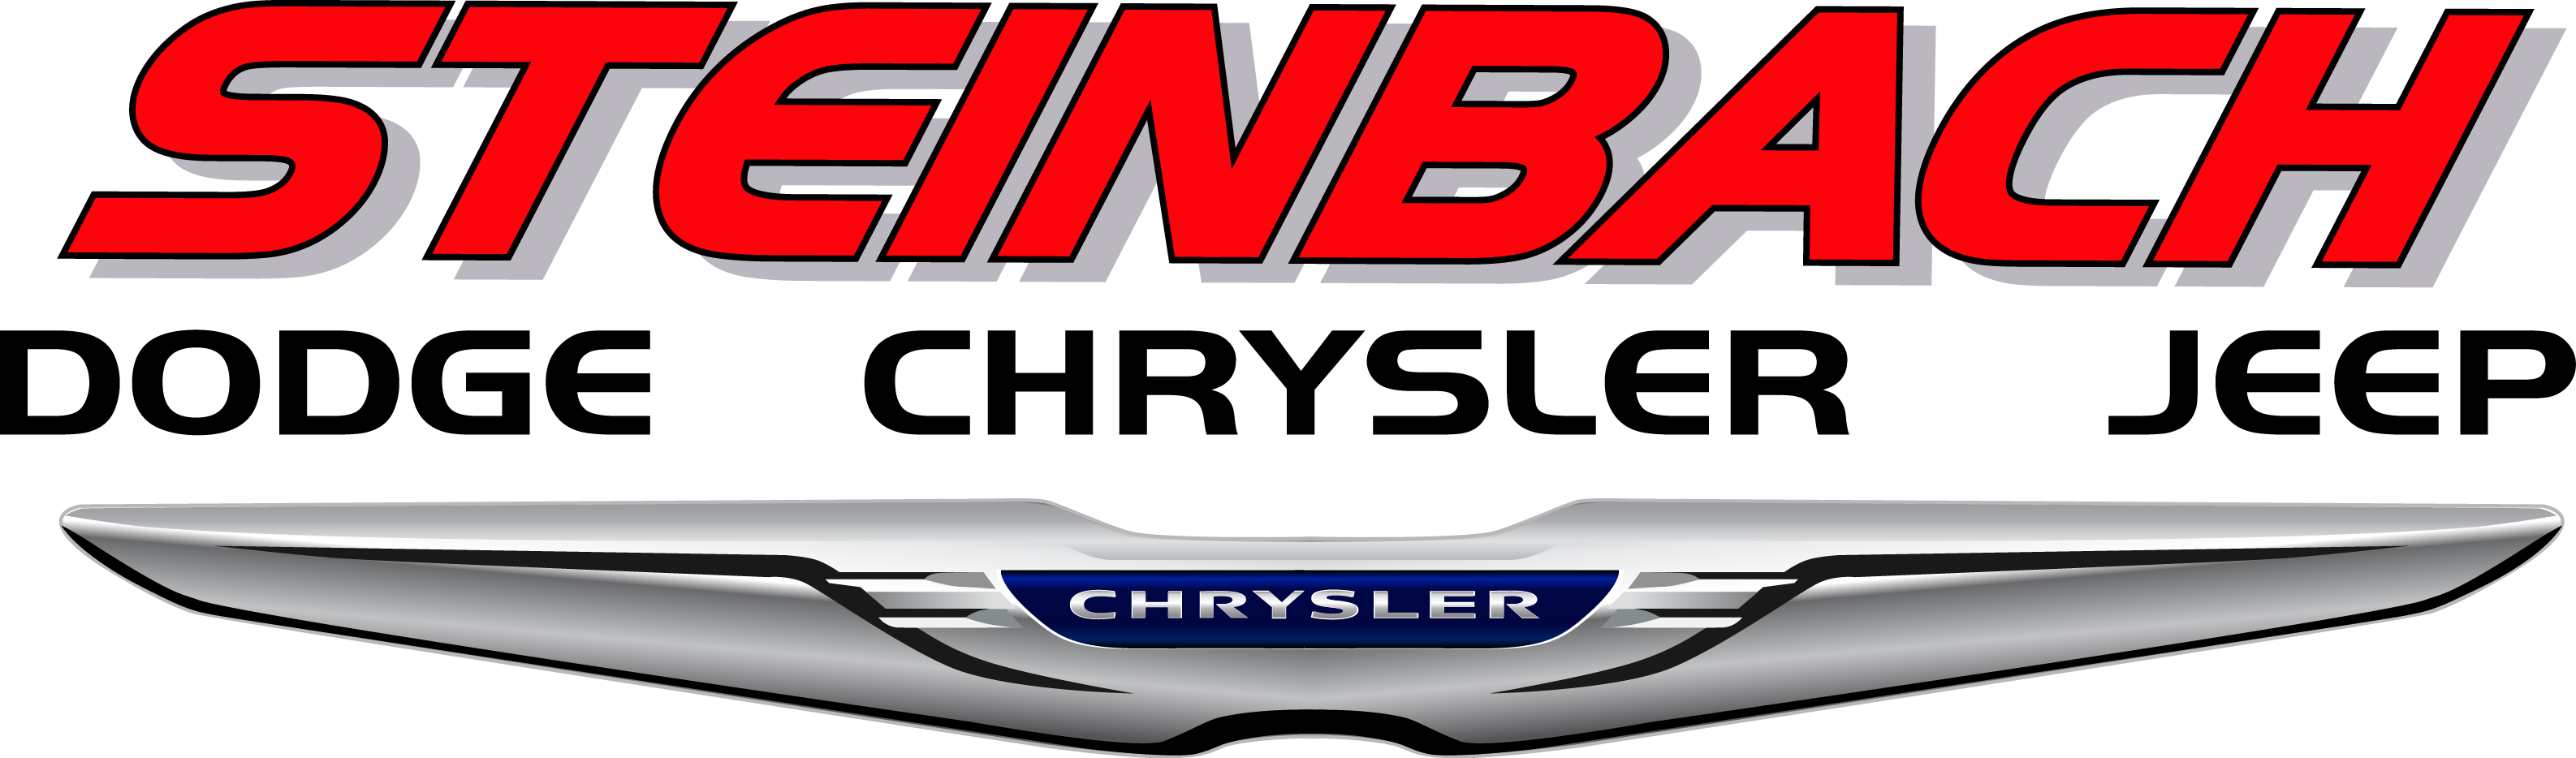 Steinbach Dodge Chrysler Ltd. Logo